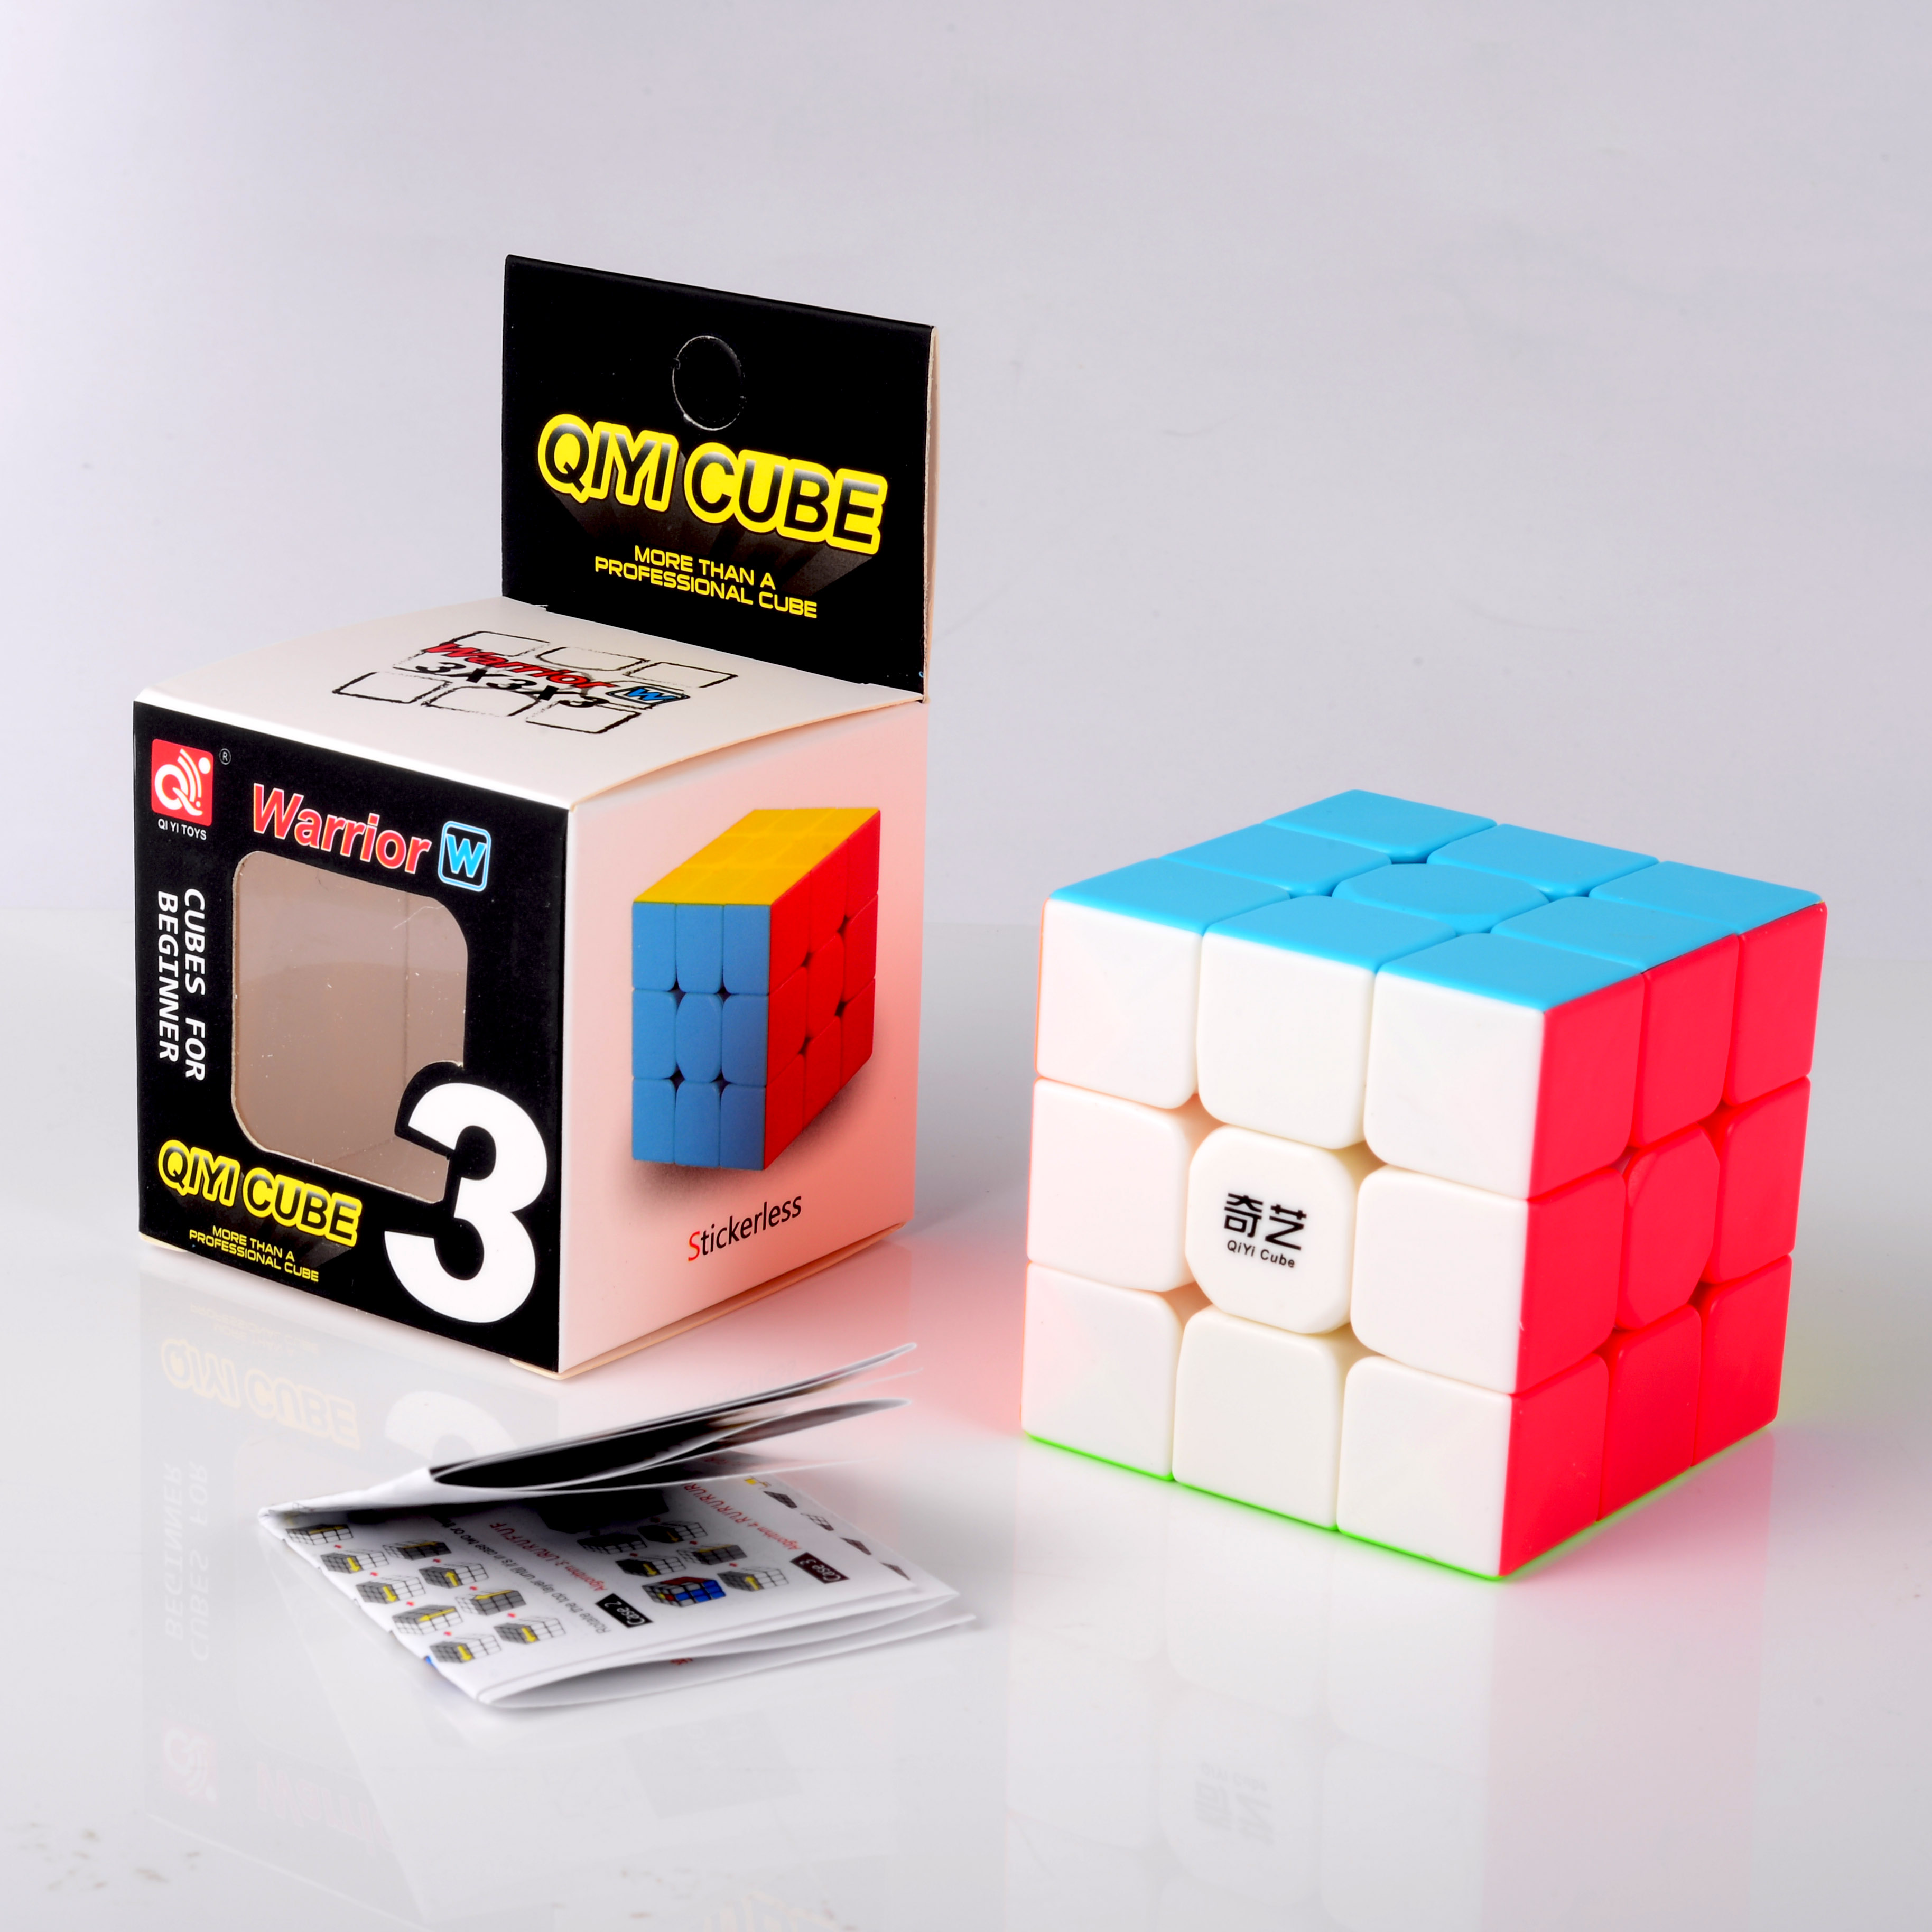 Qiyi Warrior W Colorful 3x3x3 Cube 3 Layers Magic Cube Profissional Competition Cubo 3x3 Neo Puzzle Speed Cube Toys For Children in Magic Cubes from Toys Hobbies